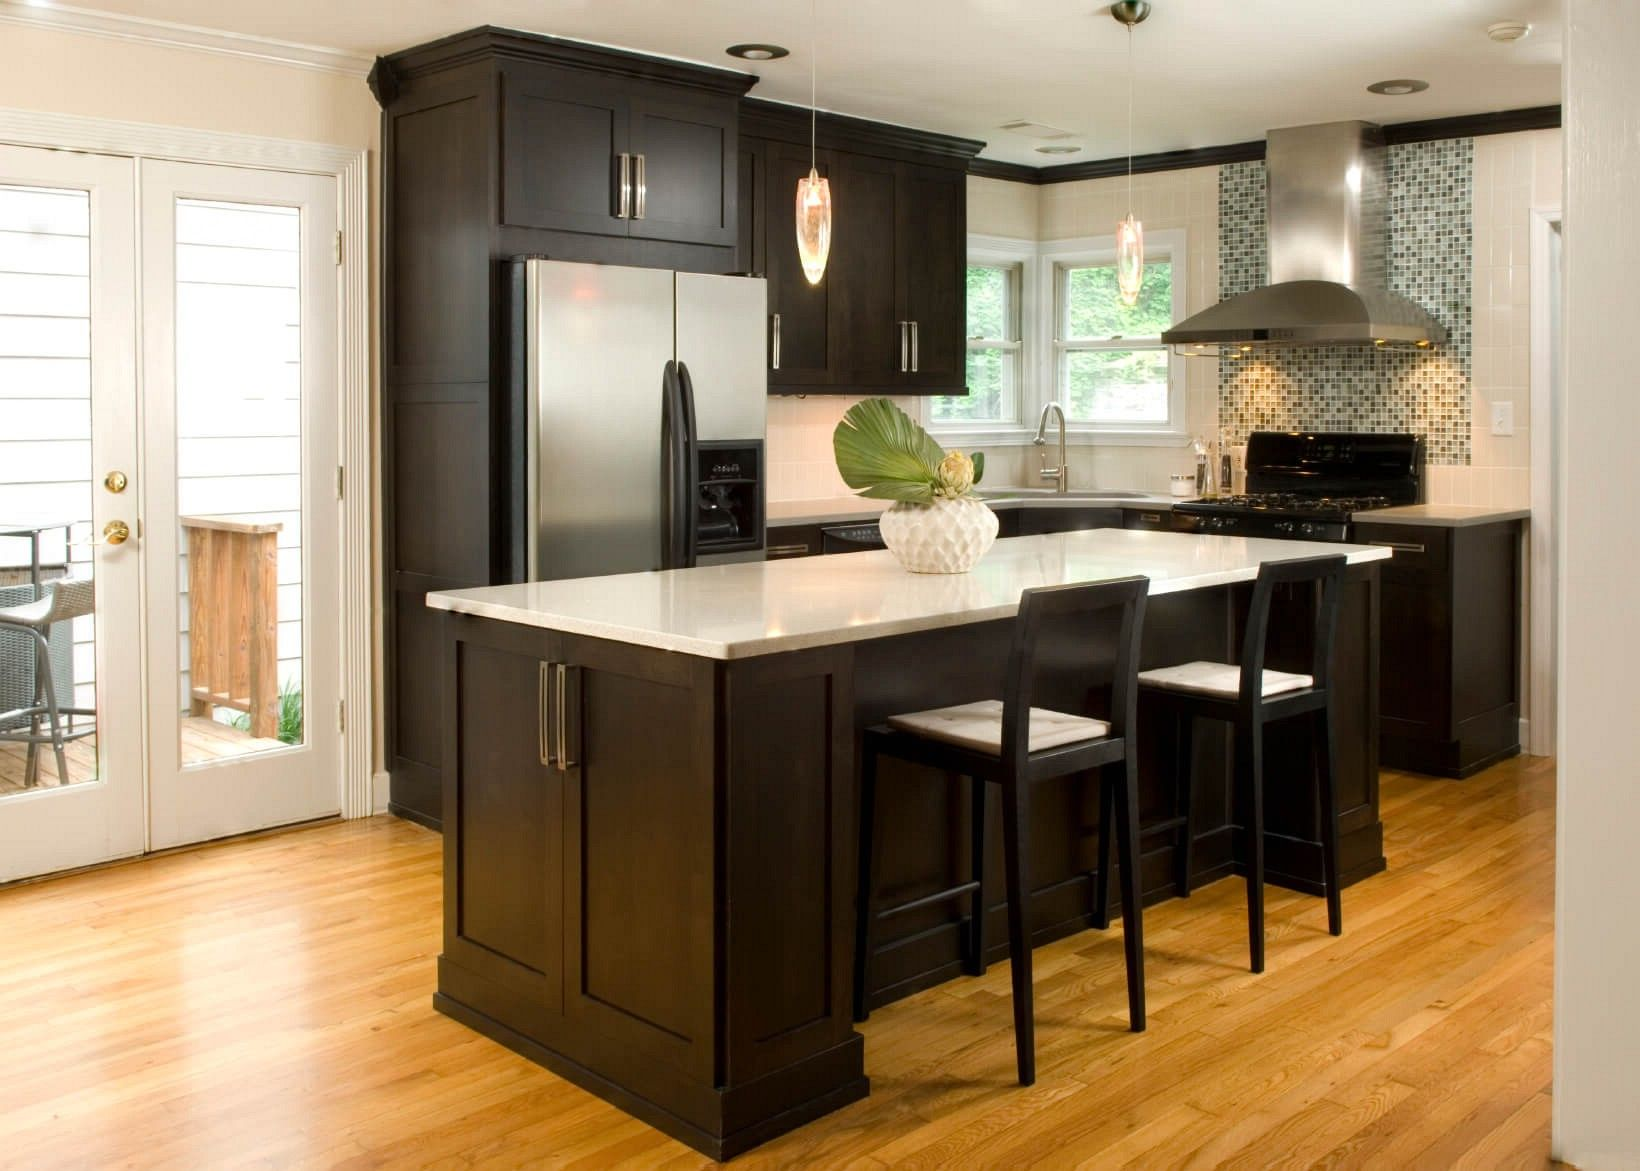 Kitchen Remodel Cabinets Or Floors First